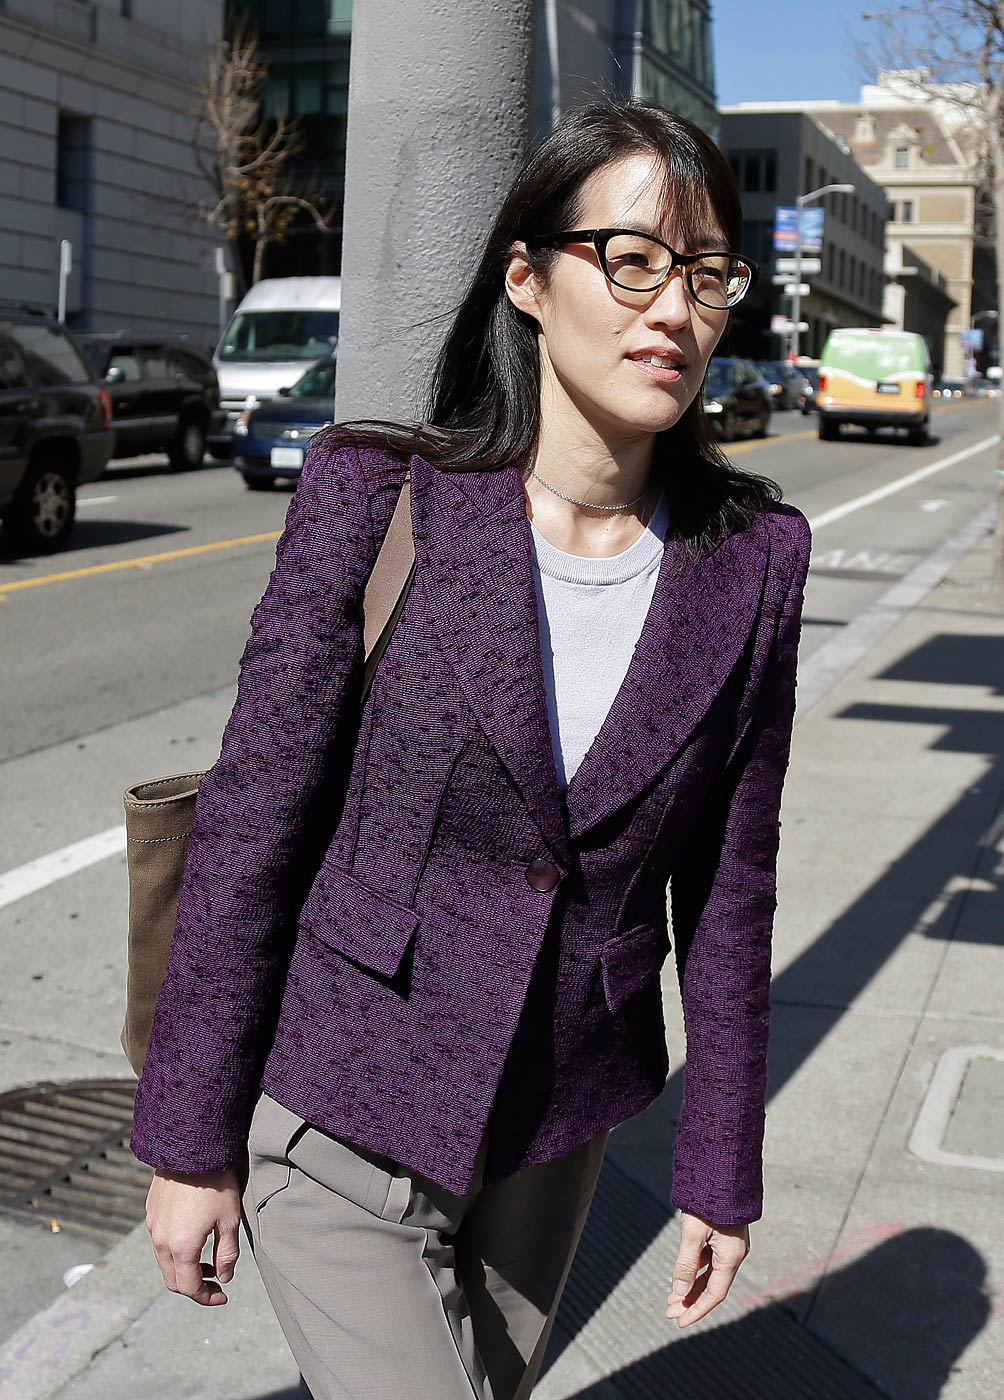 Ellen Pao leaves the Civic Center Courthouse on Feb. 24, 2015, in San Francisco, Calif.